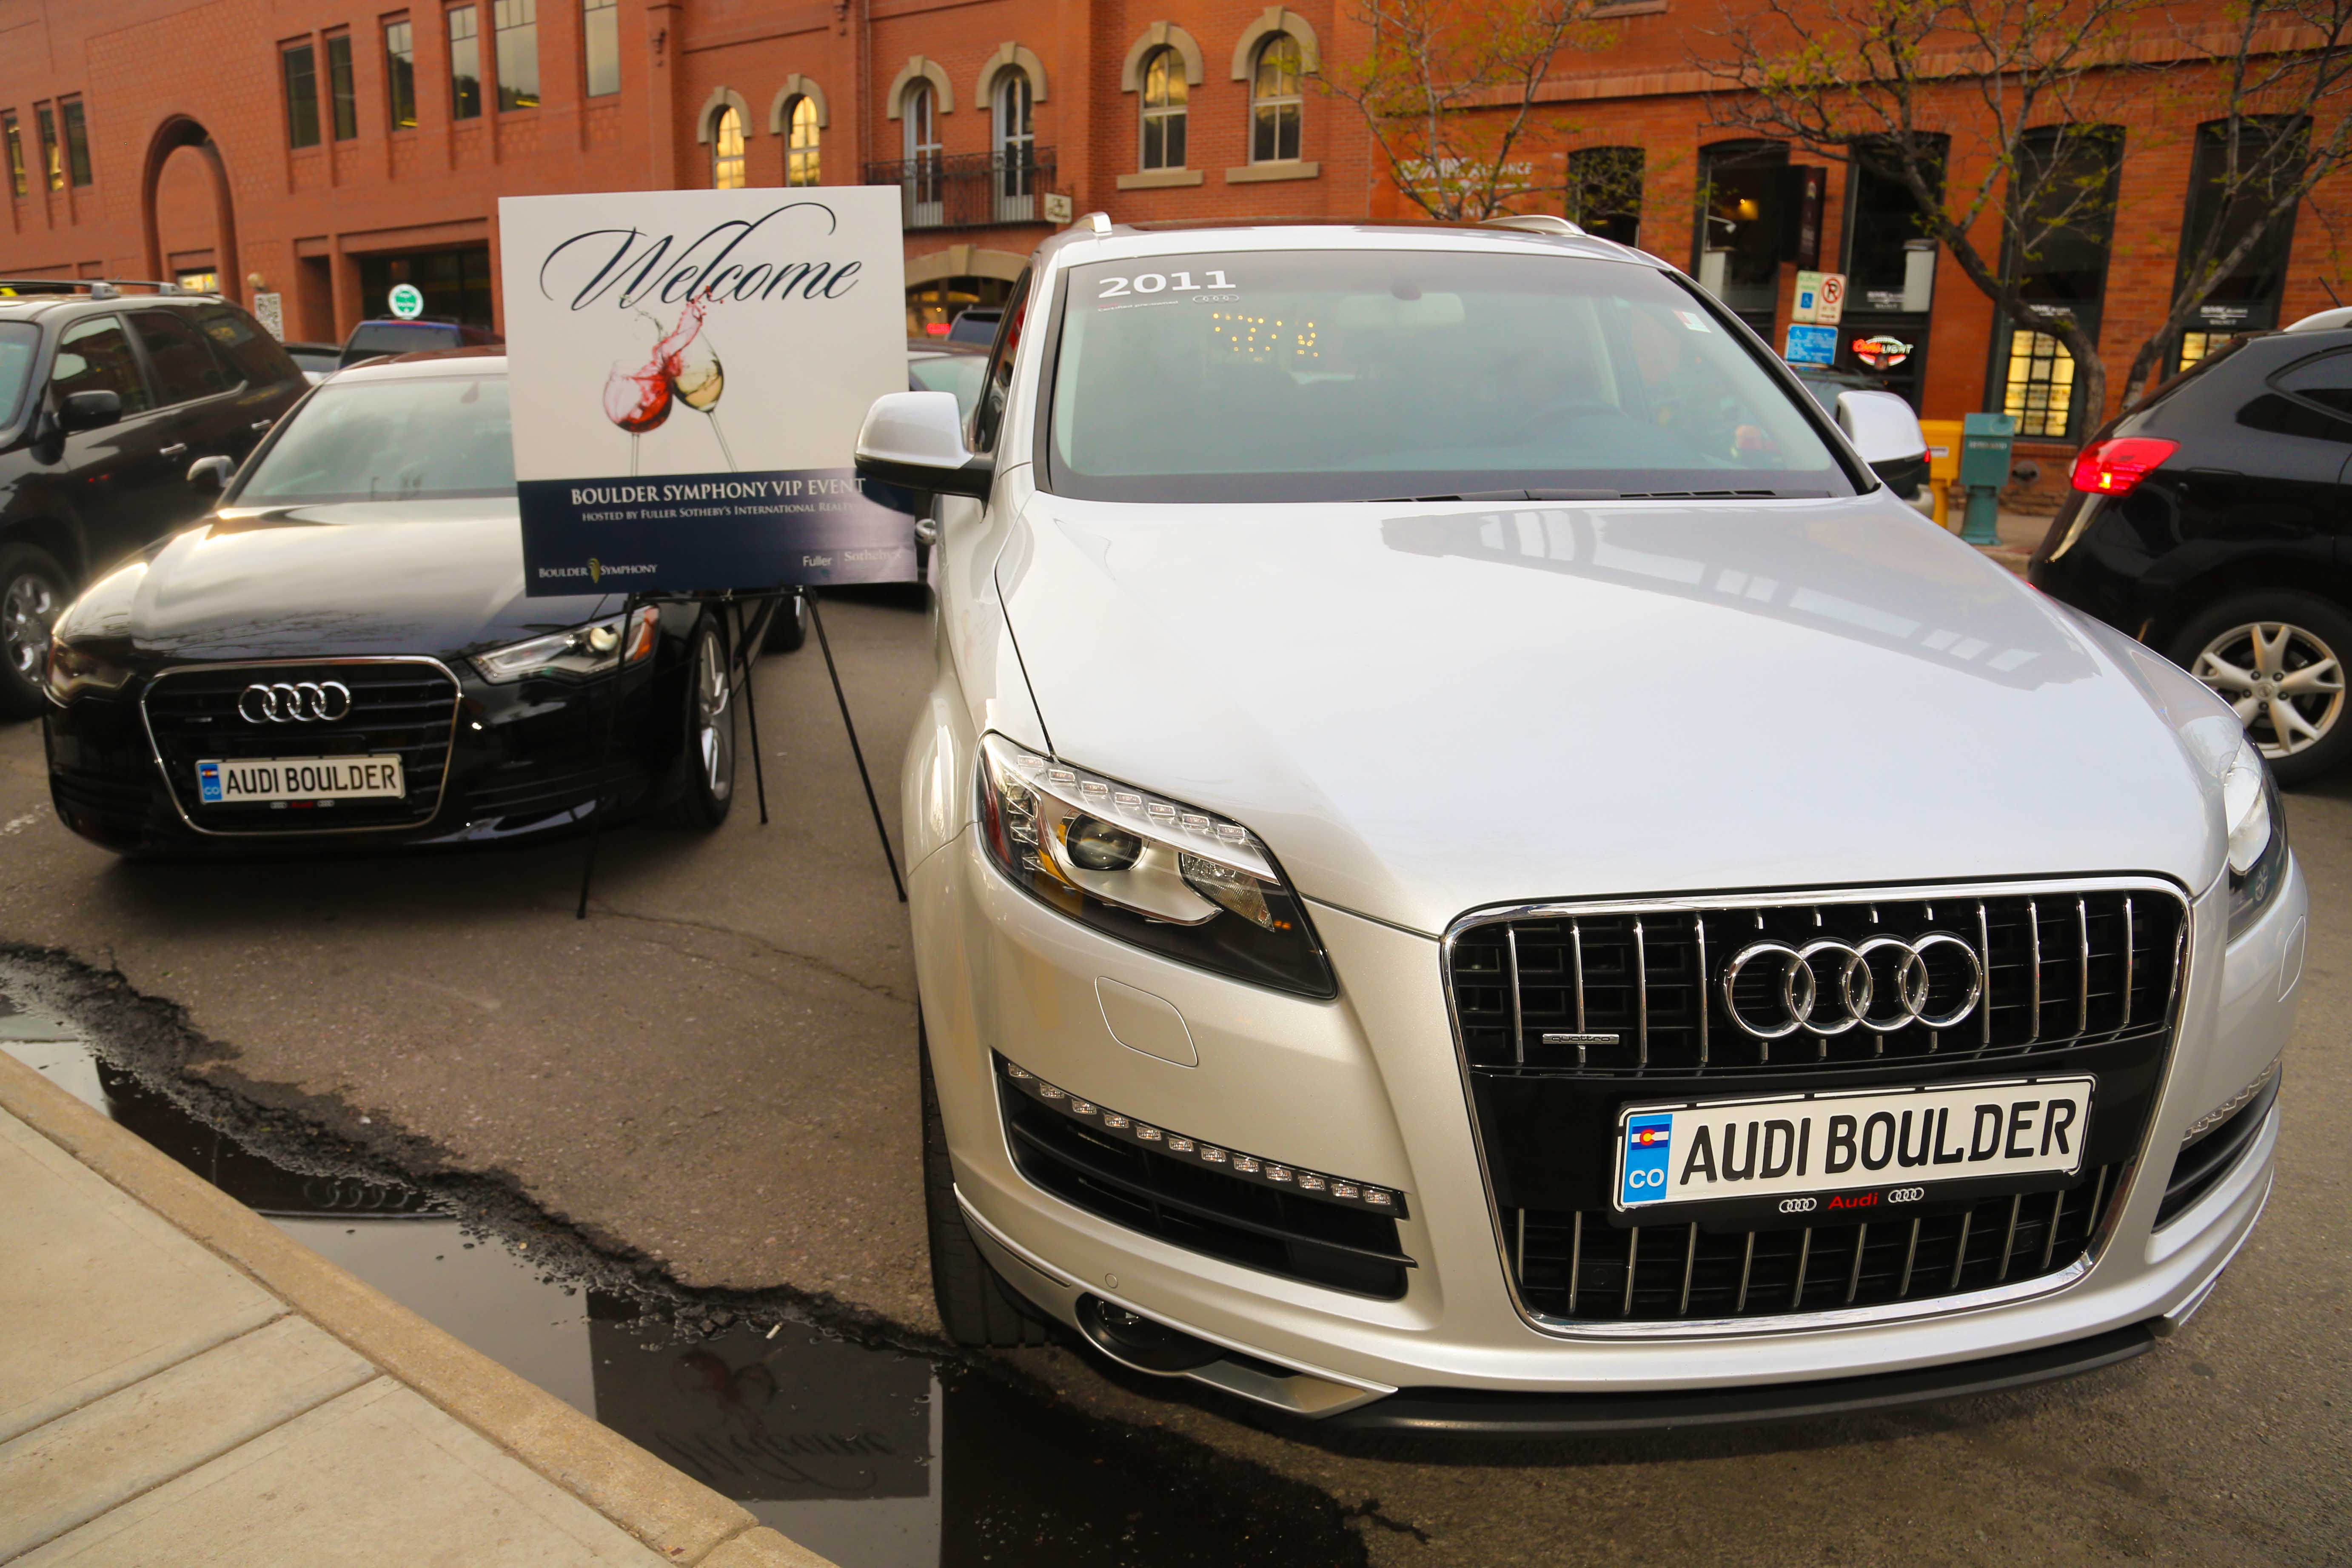 Fuller Sothebys International Realty Hosts Harmonic Fundraiser To - Audi boulder